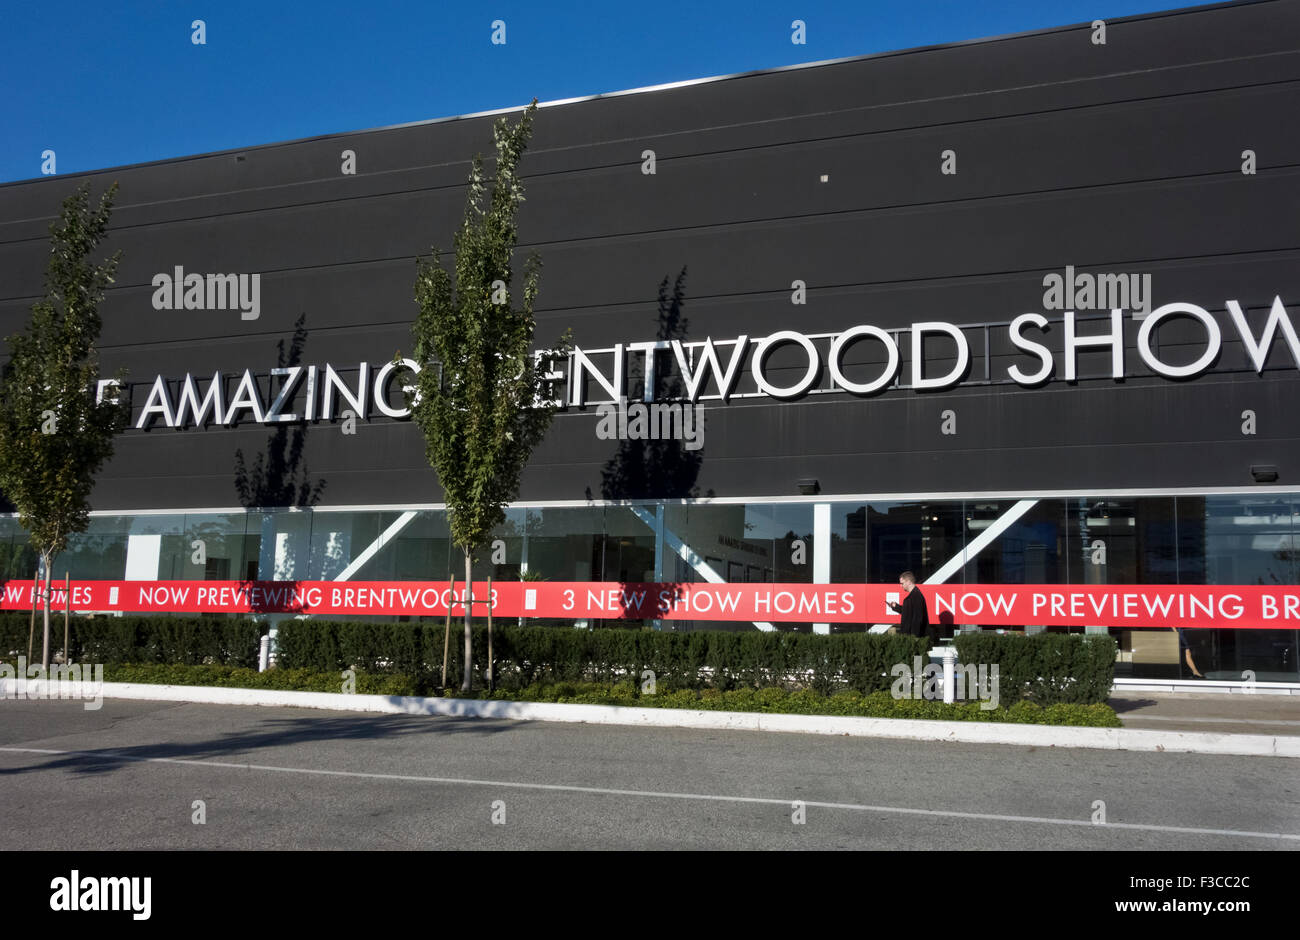 Exterior sign for the Amazing Brentwood condominium development show homes in Burnaby, BC (Greater Vancouver), Canada - Stock Image